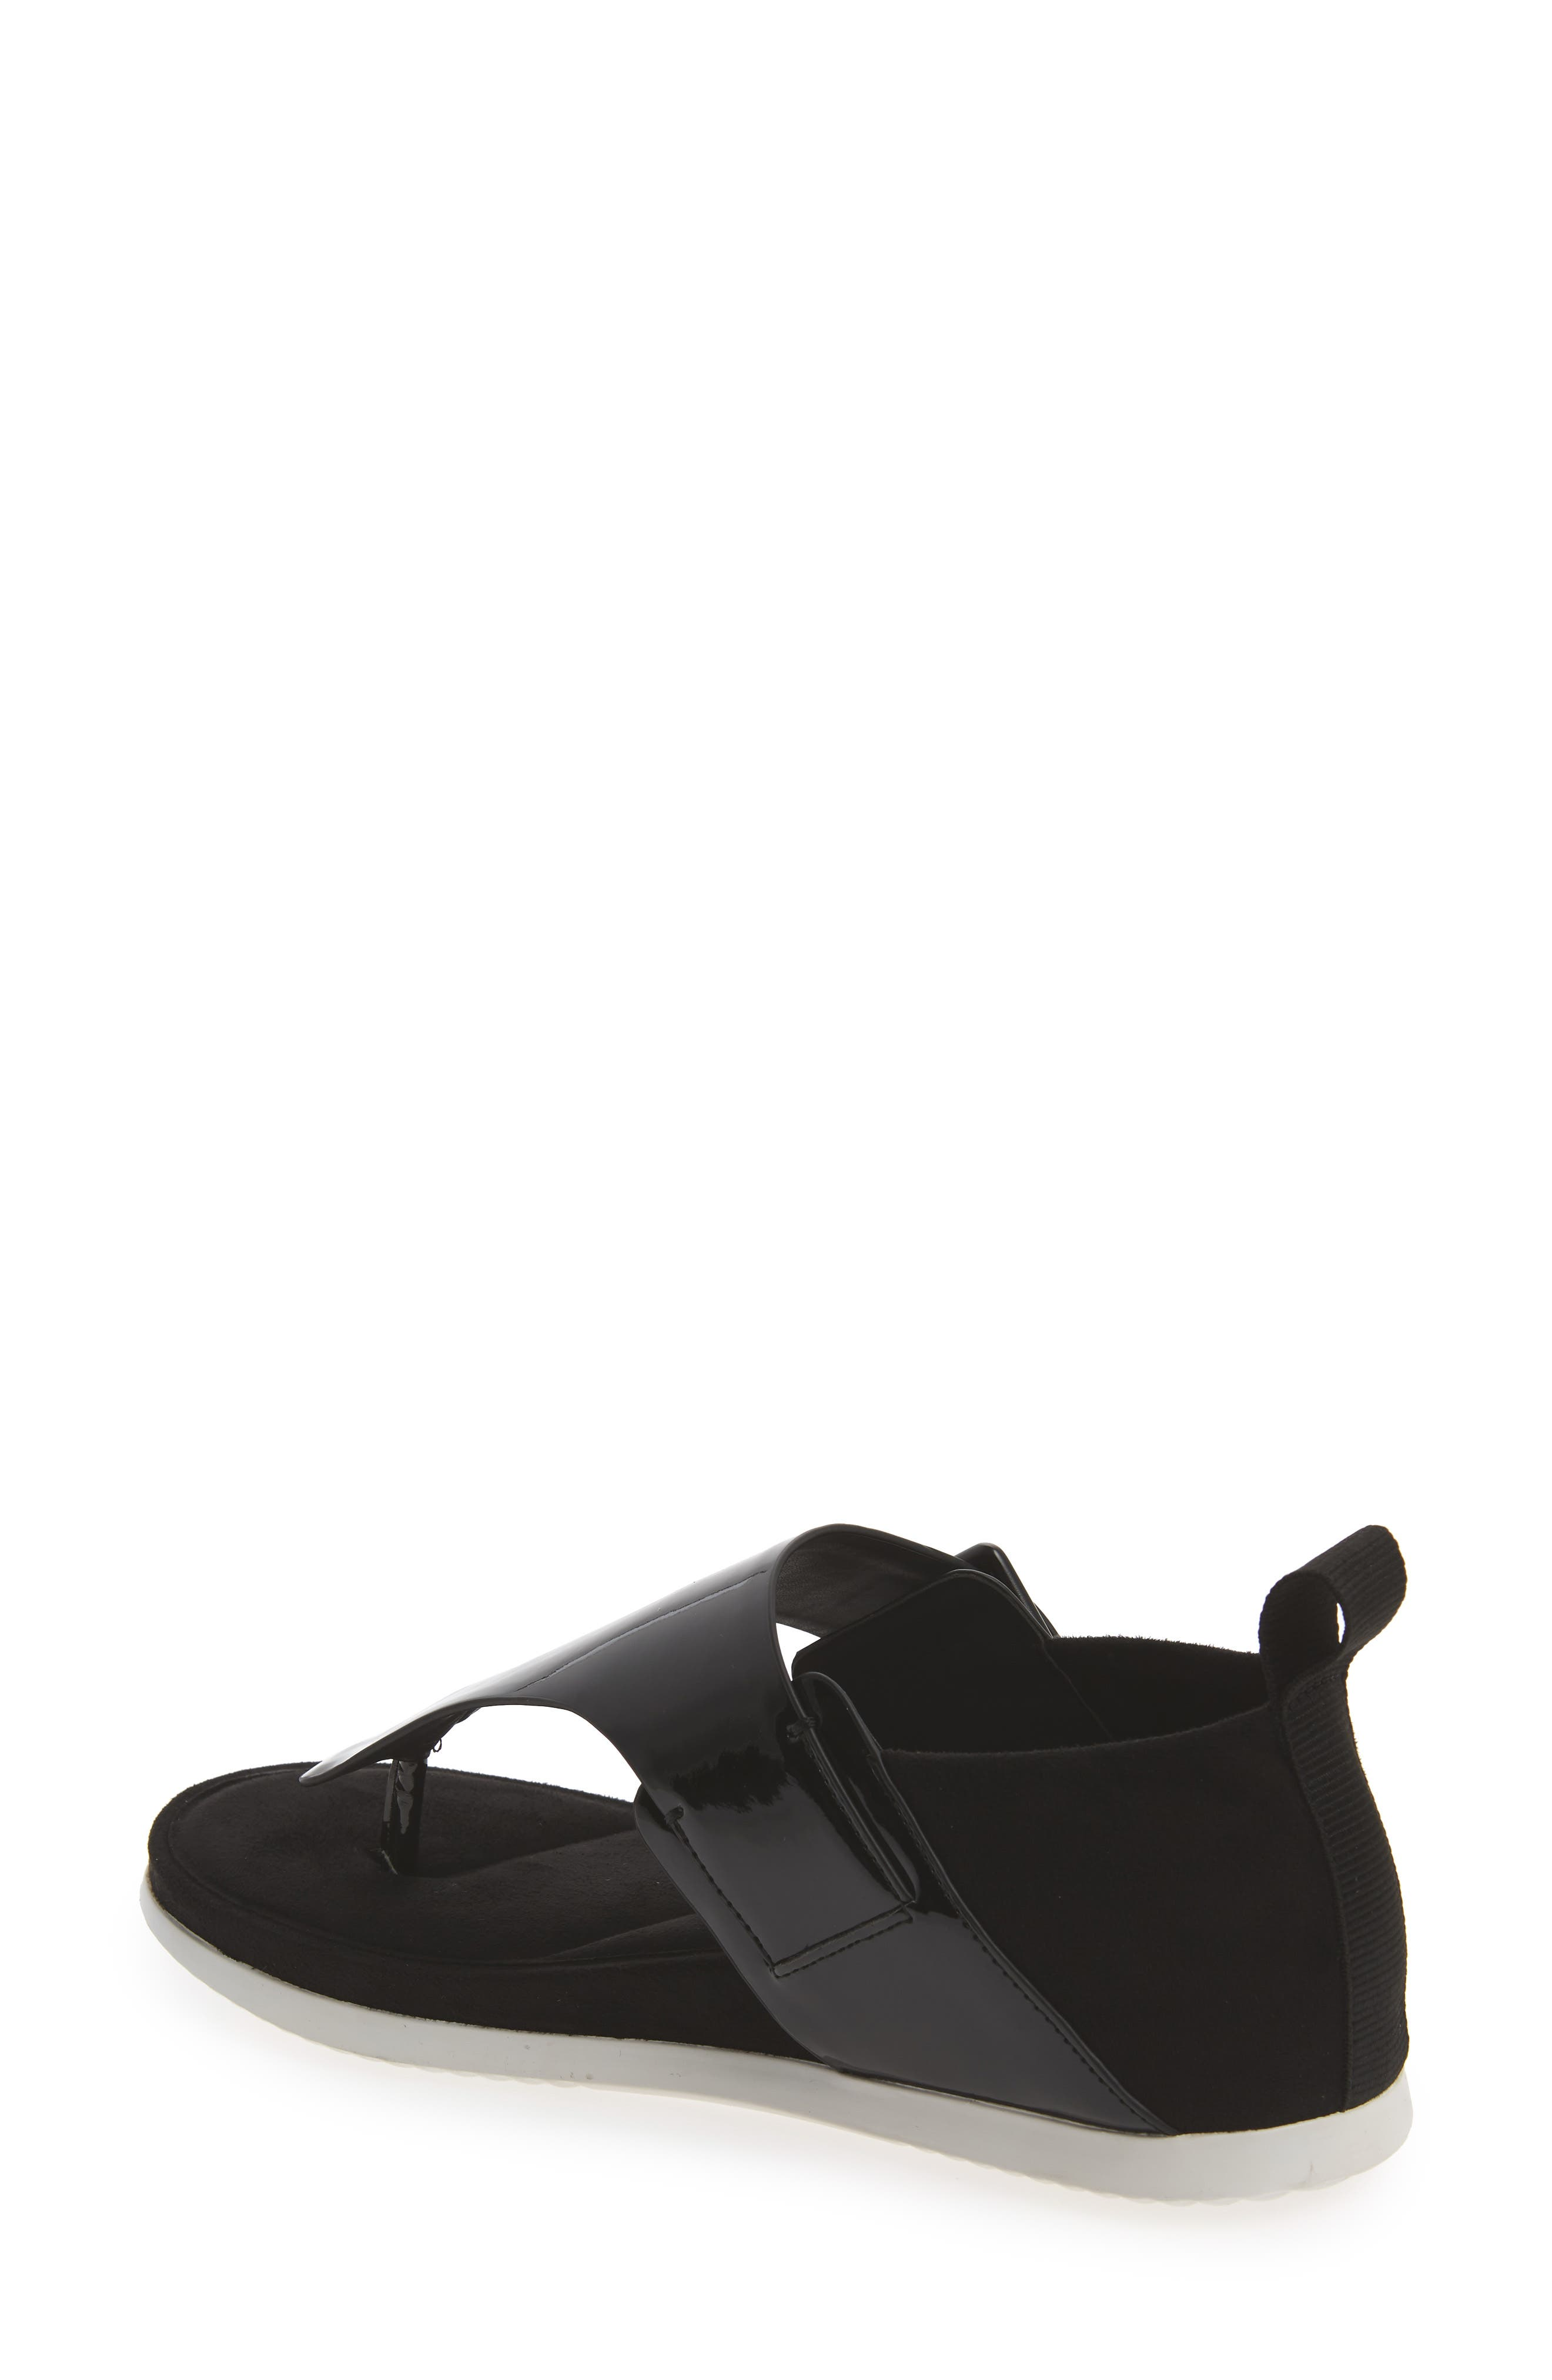 Dionay Wedge Sandal,                             Alternate thumbnail 2, color,                             Black Patent